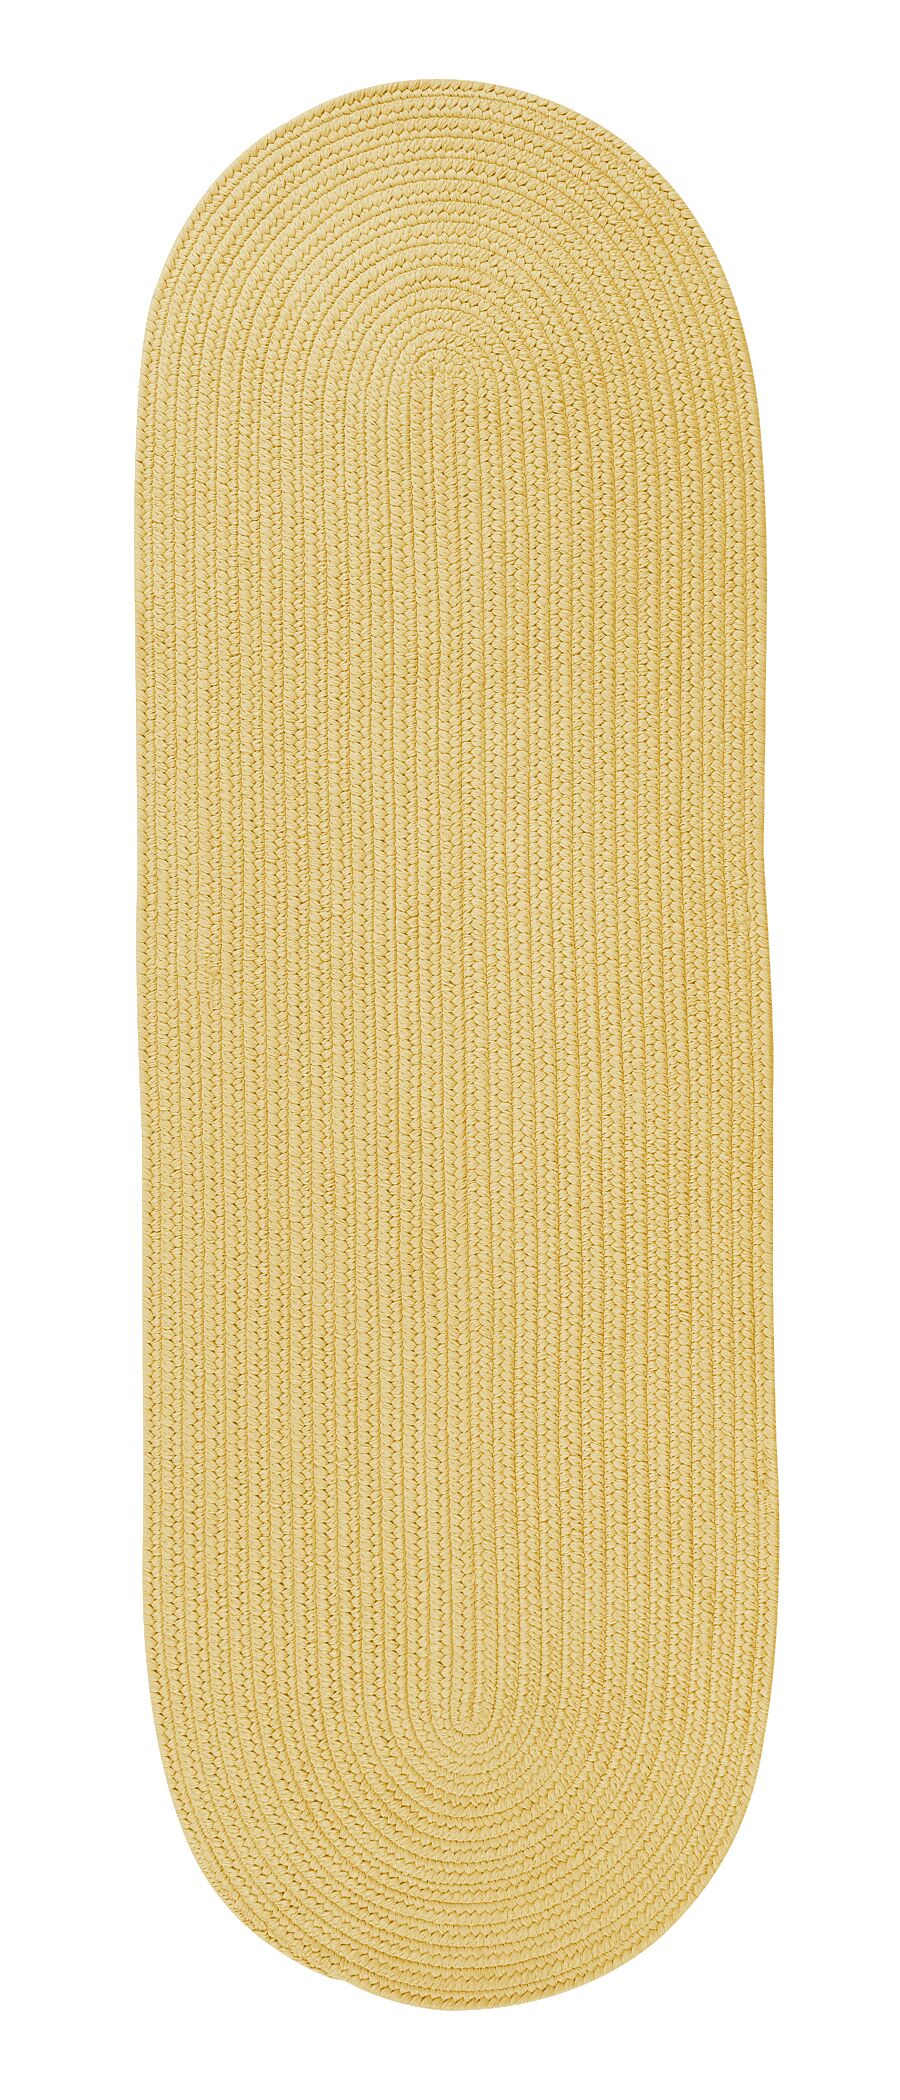 Mcintyre Pale Banana Outdoor Area Rug Rug Size: Oval Runner 2' x 8'